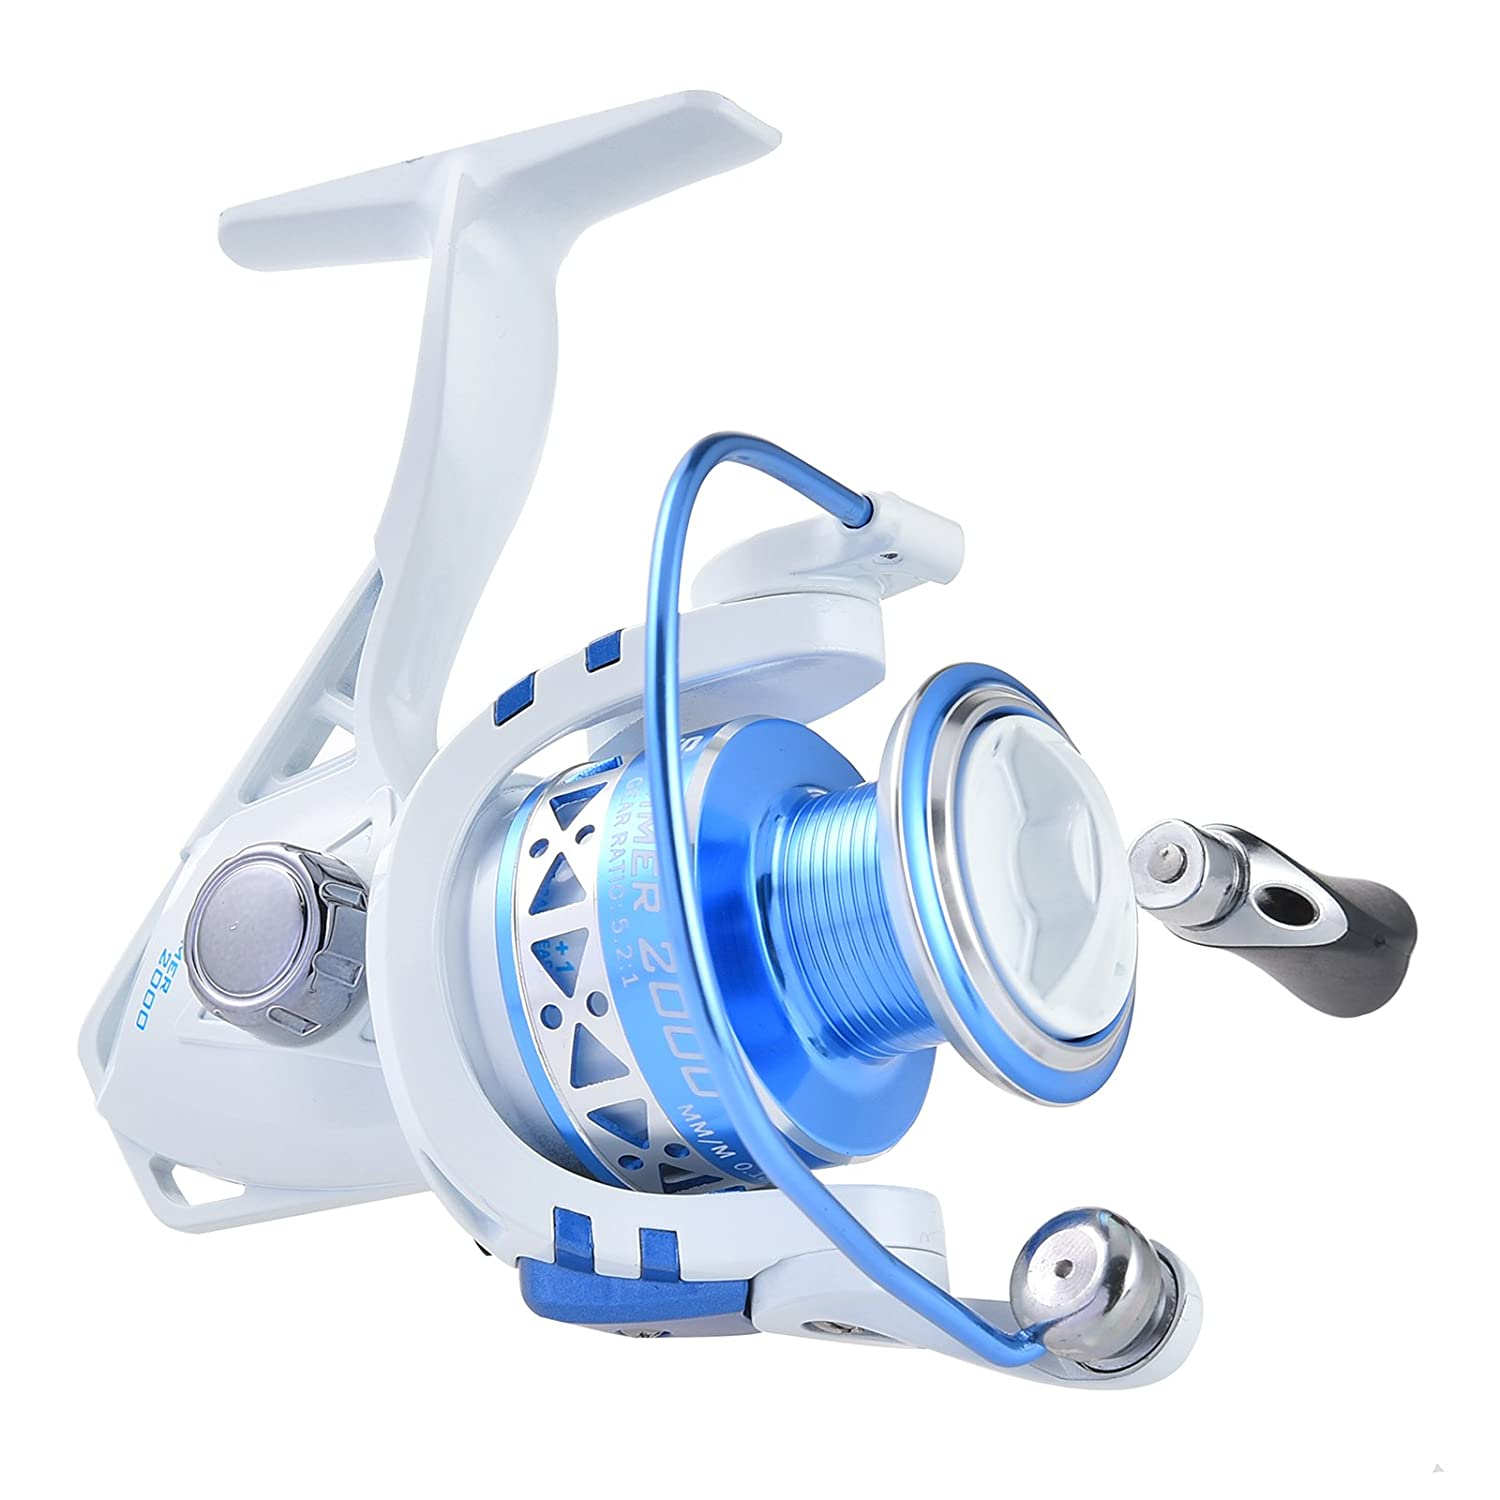 KastKing Summer Spinning Reel Light Weight Ultra Smooth Powerful Spinning Fishing Reel 9 +1 BB